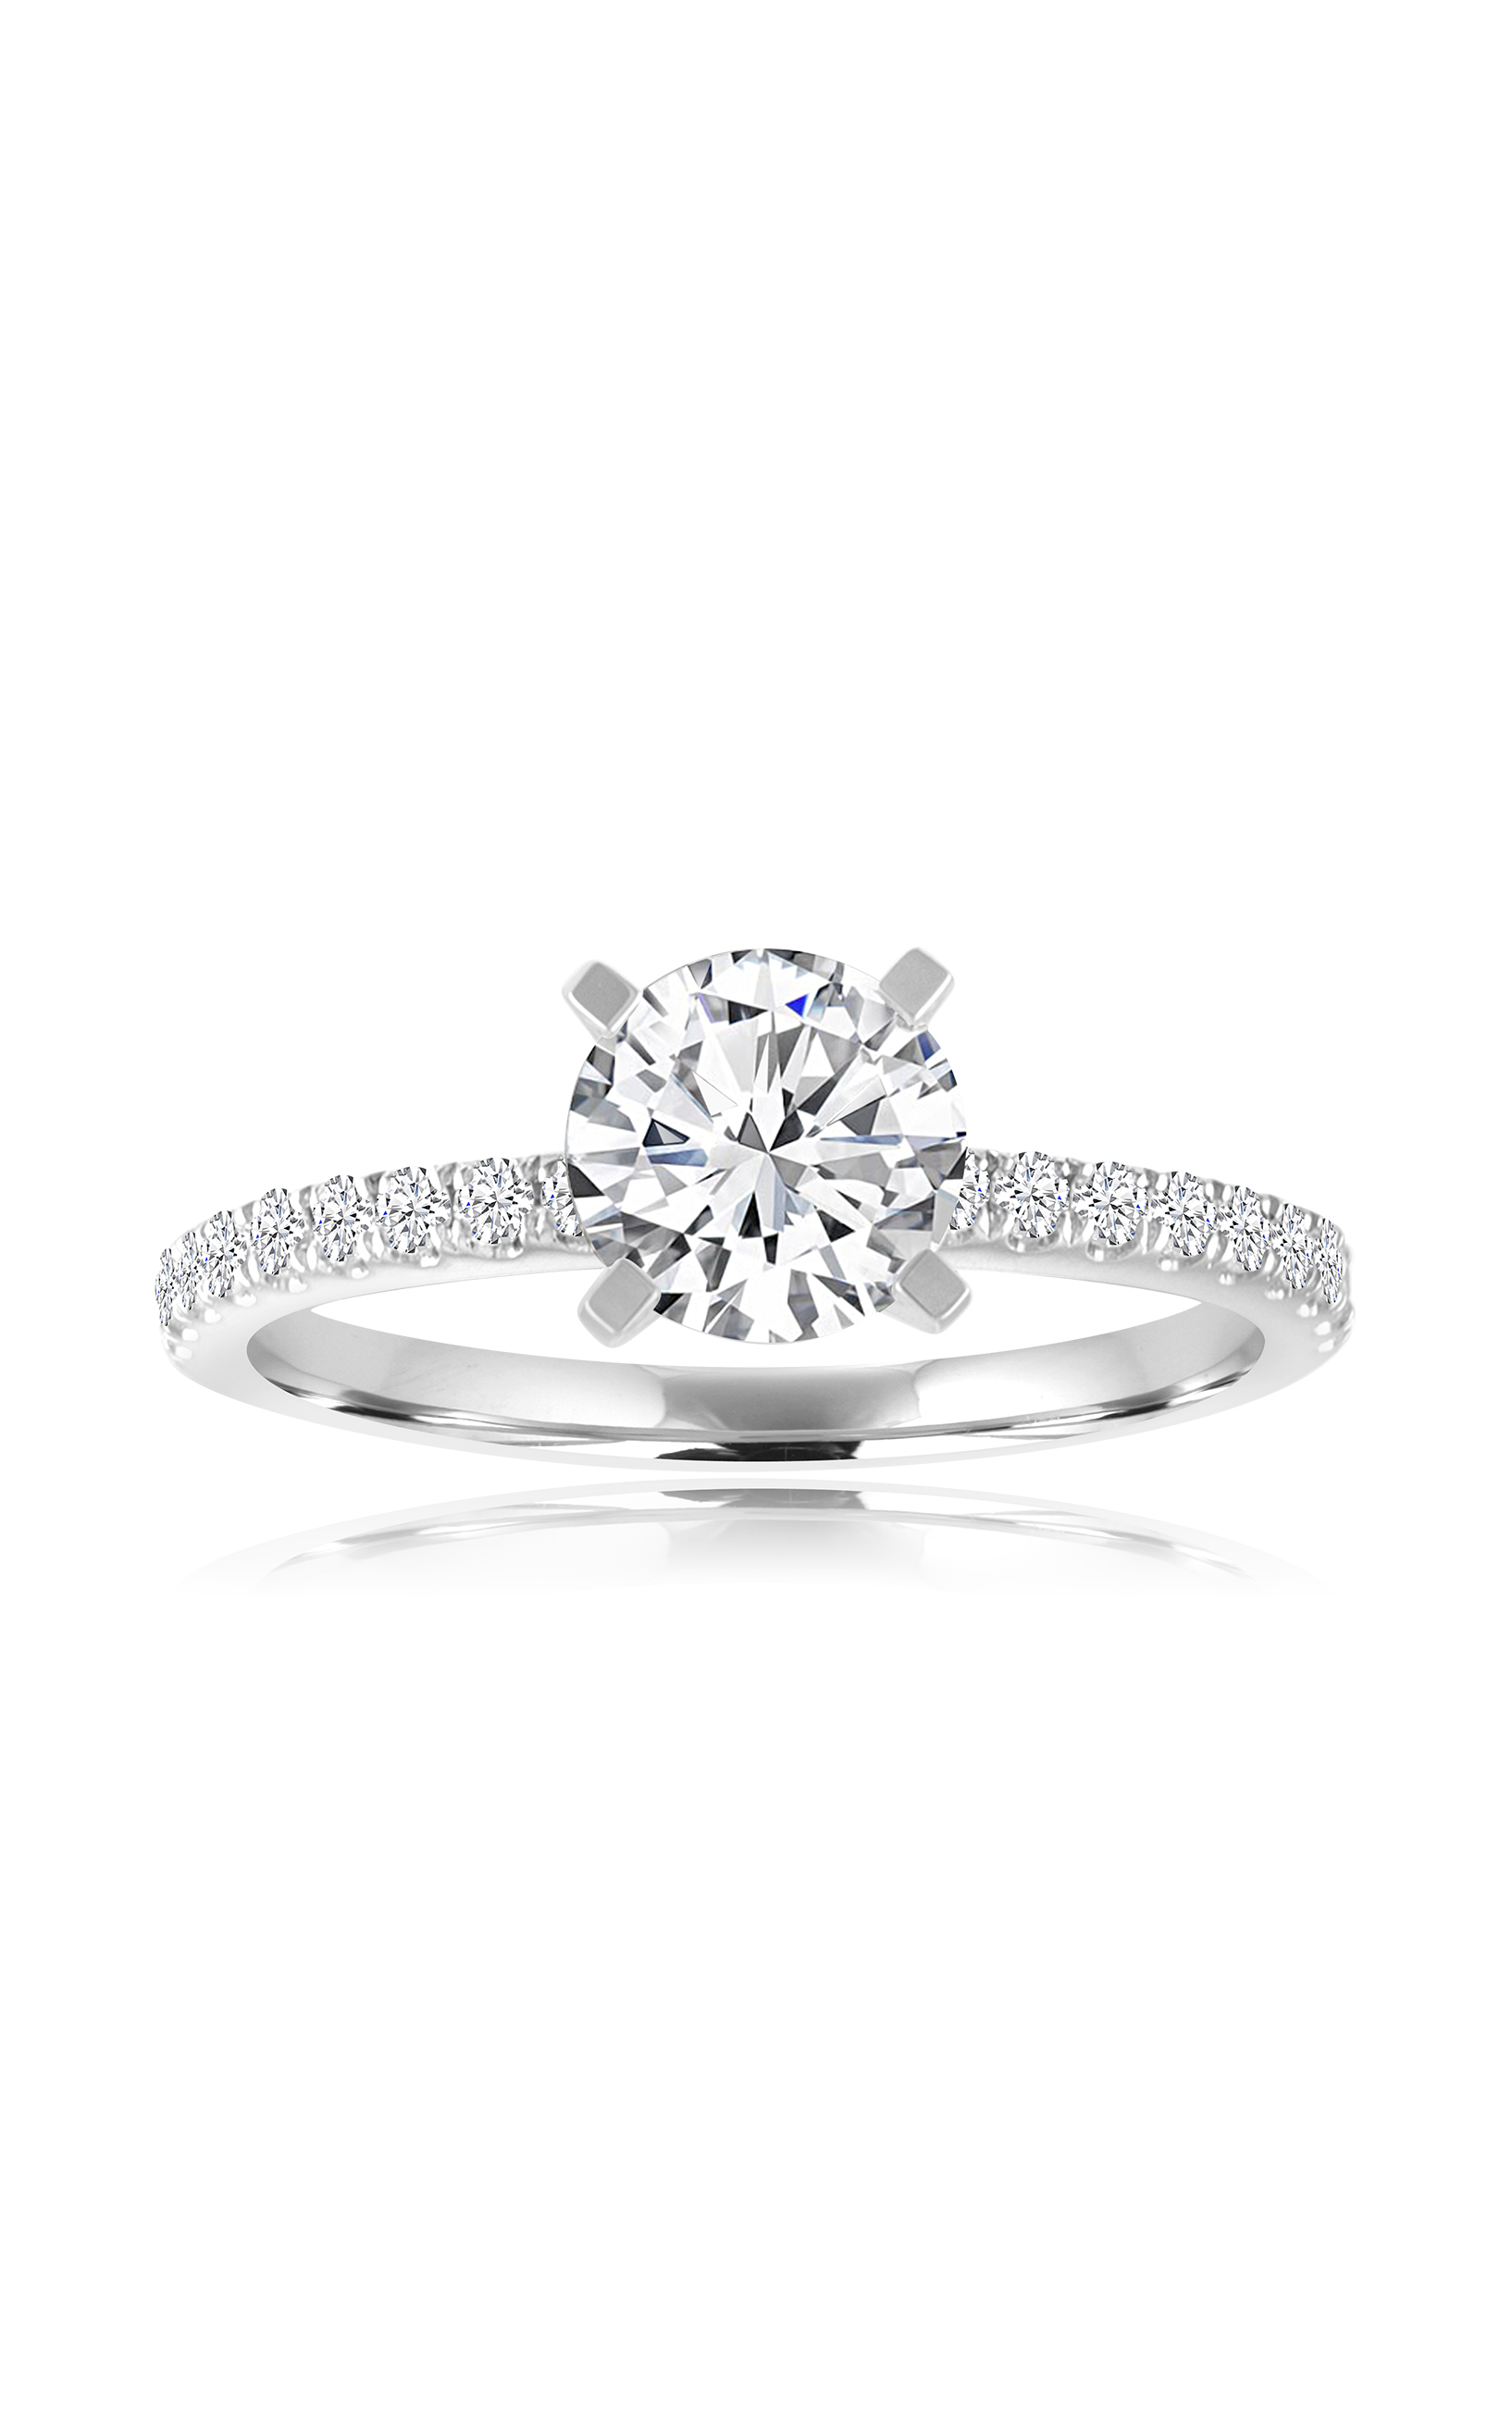 Imagine Bridal Engagement Rings 66156D-1 2 product image